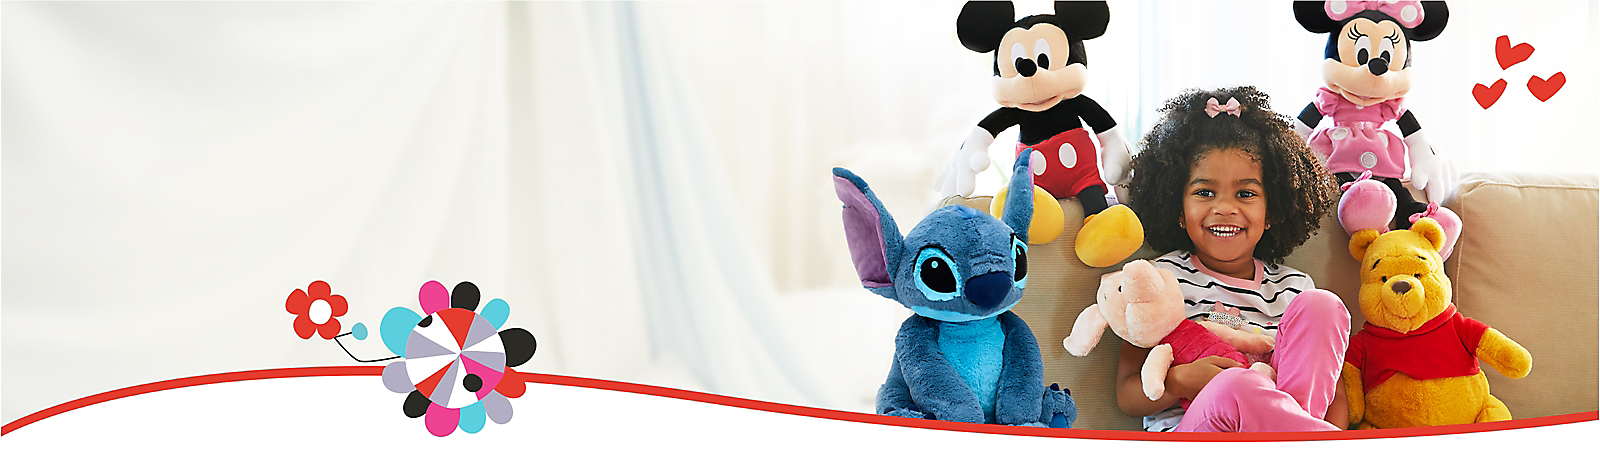 Background image of Buy One Plush, Get One for $5